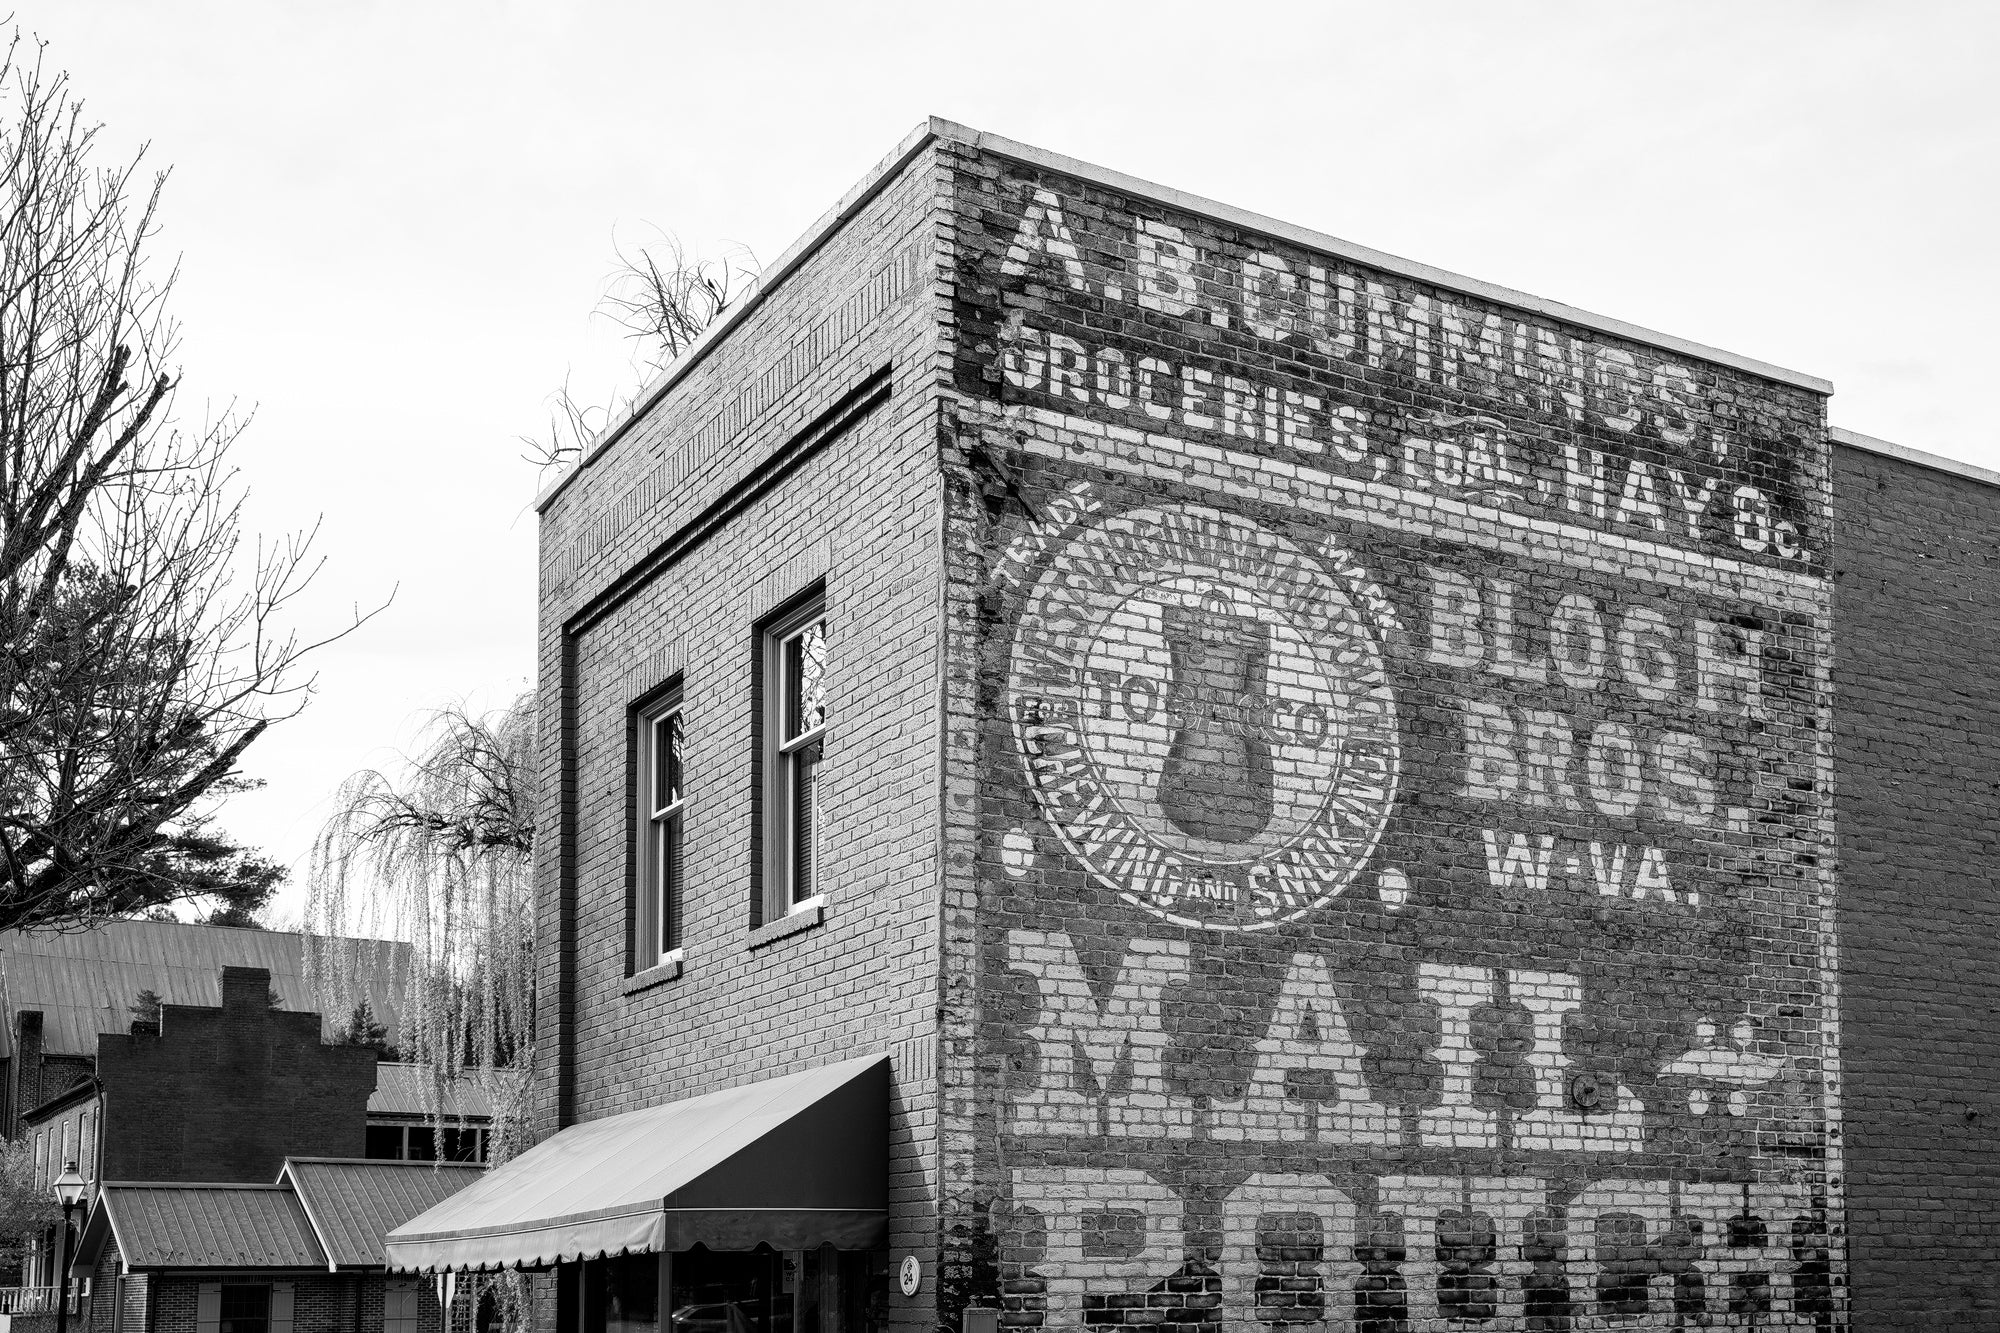 Black and white photograph of the historic Mail Pouch ghost sign in Jonesborough, Tennessee